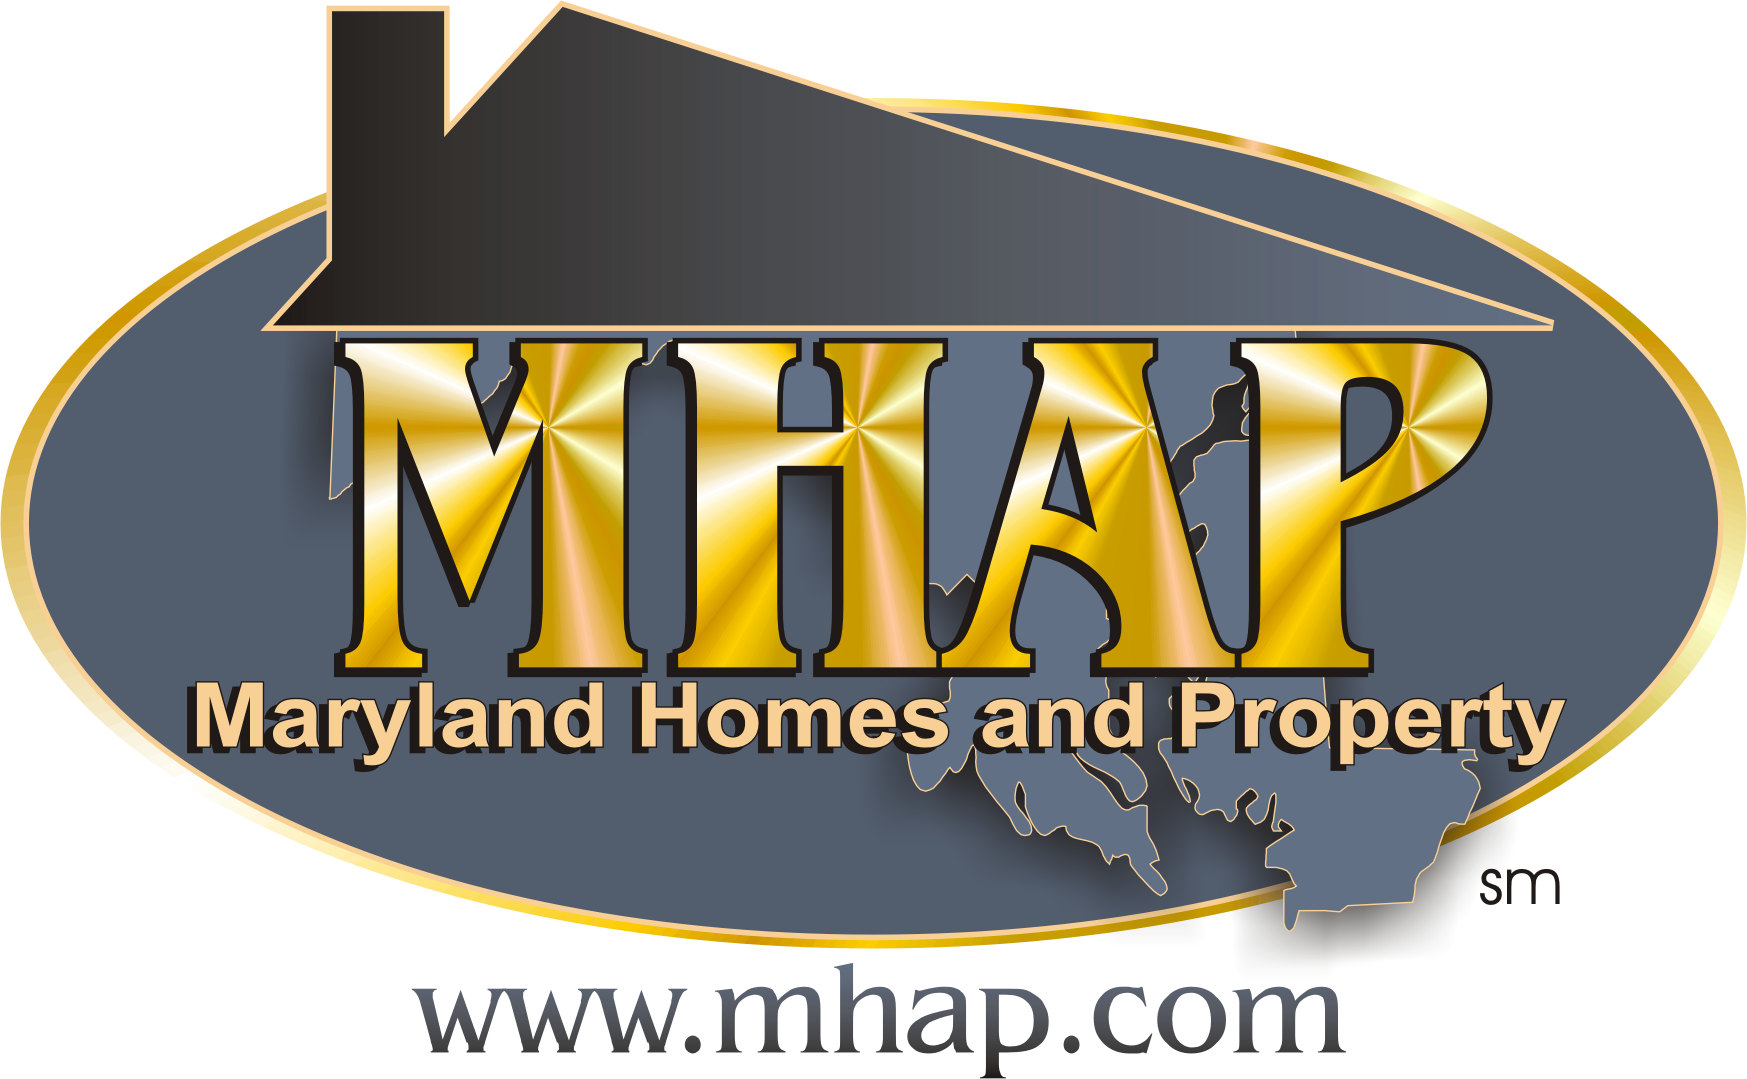 Maryland Homes and Property